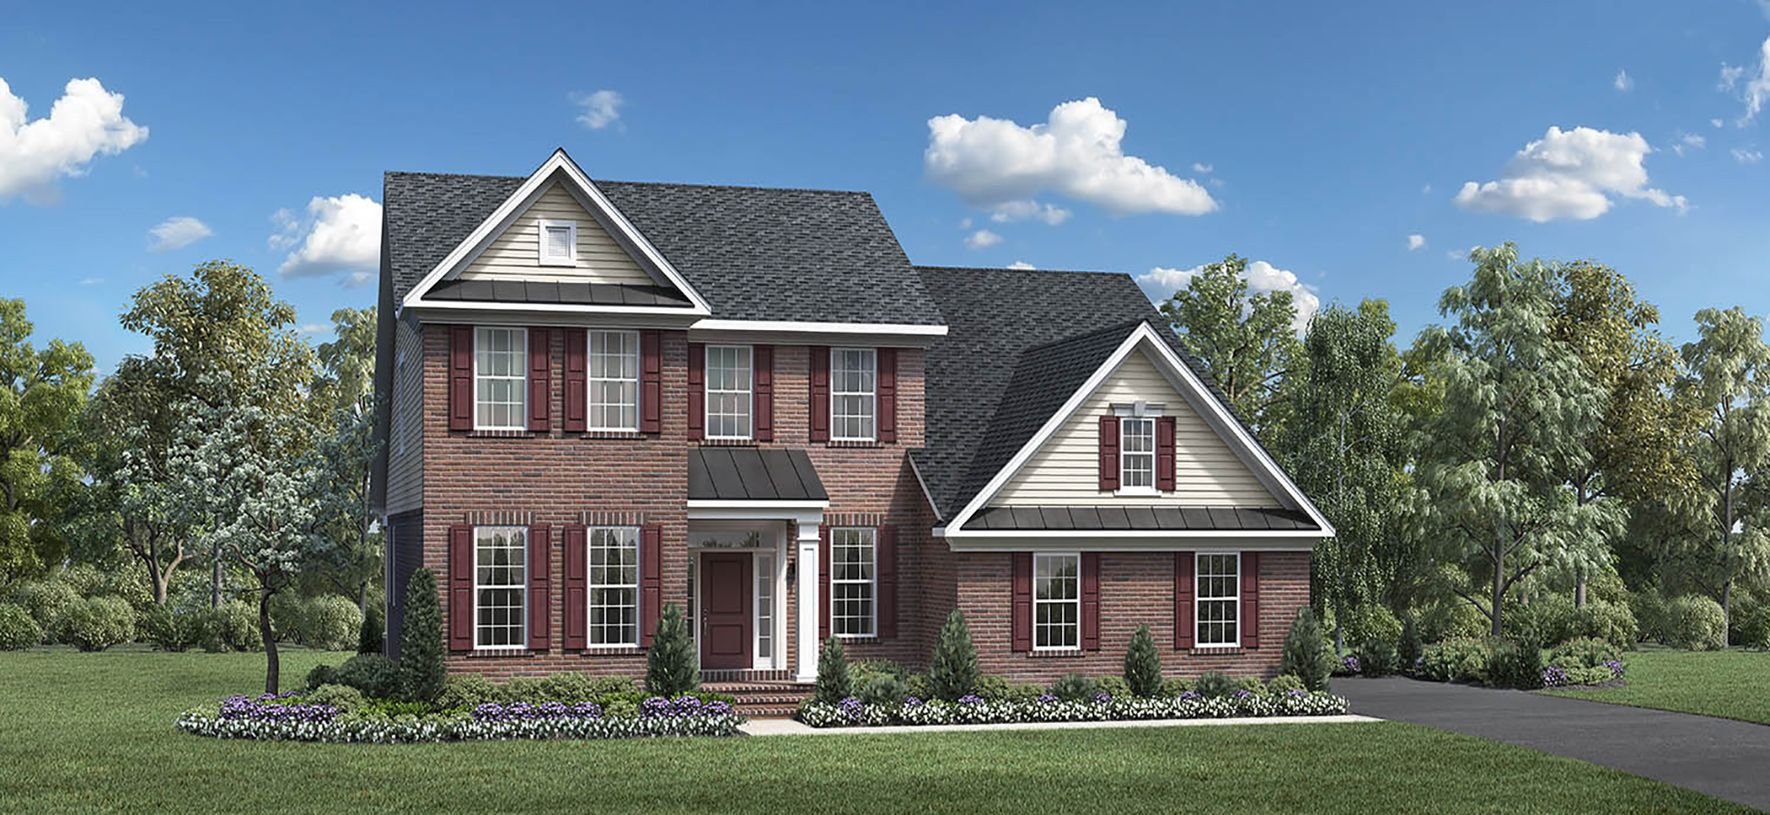 Exterior featured in the Baymont By Toll Brothers in Detroit, MI